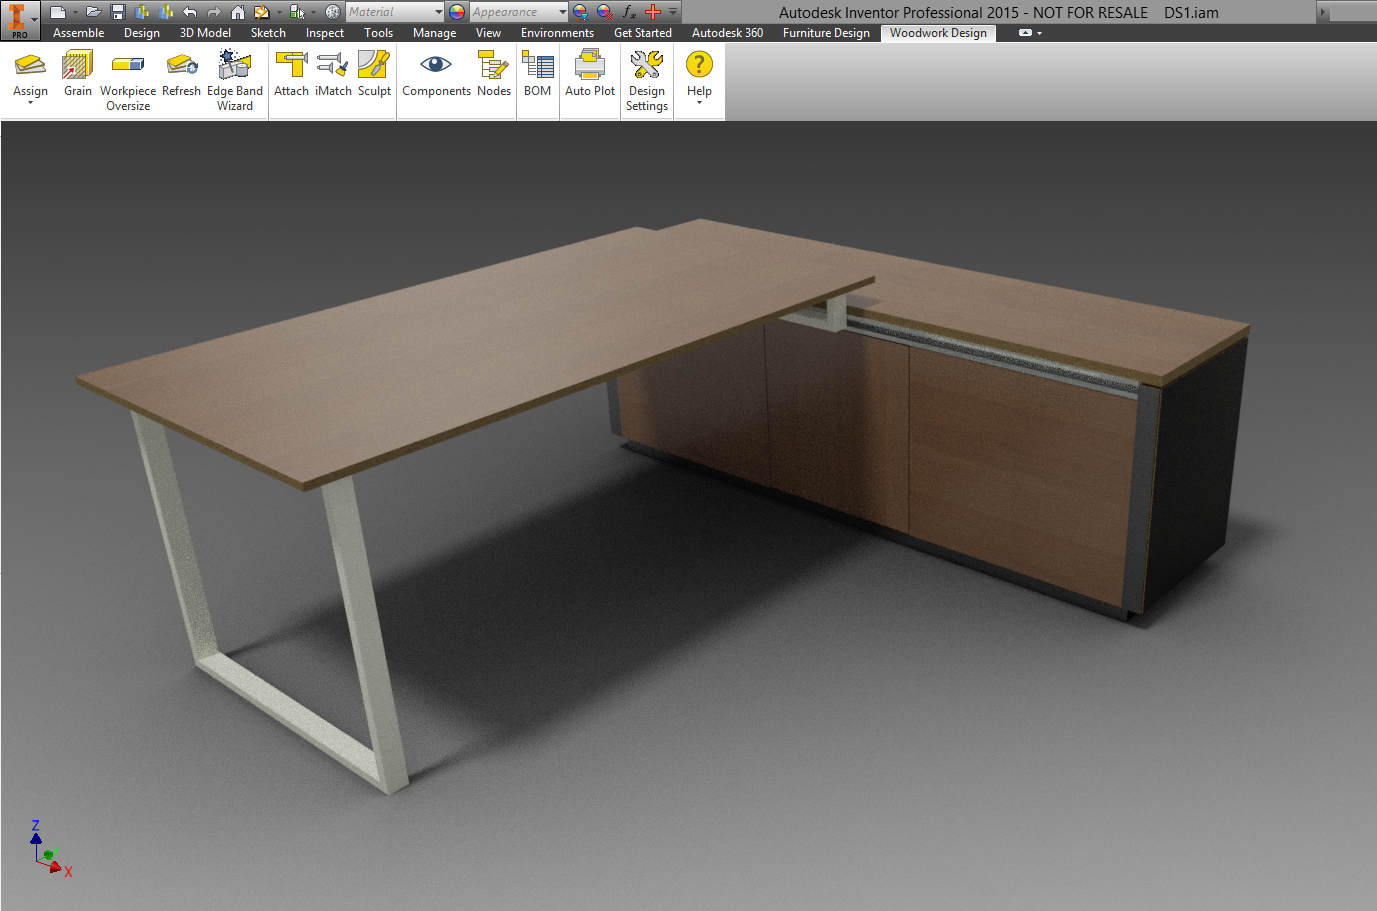 Woodwork for inventor blogcriteria for the selection of for In design furniture